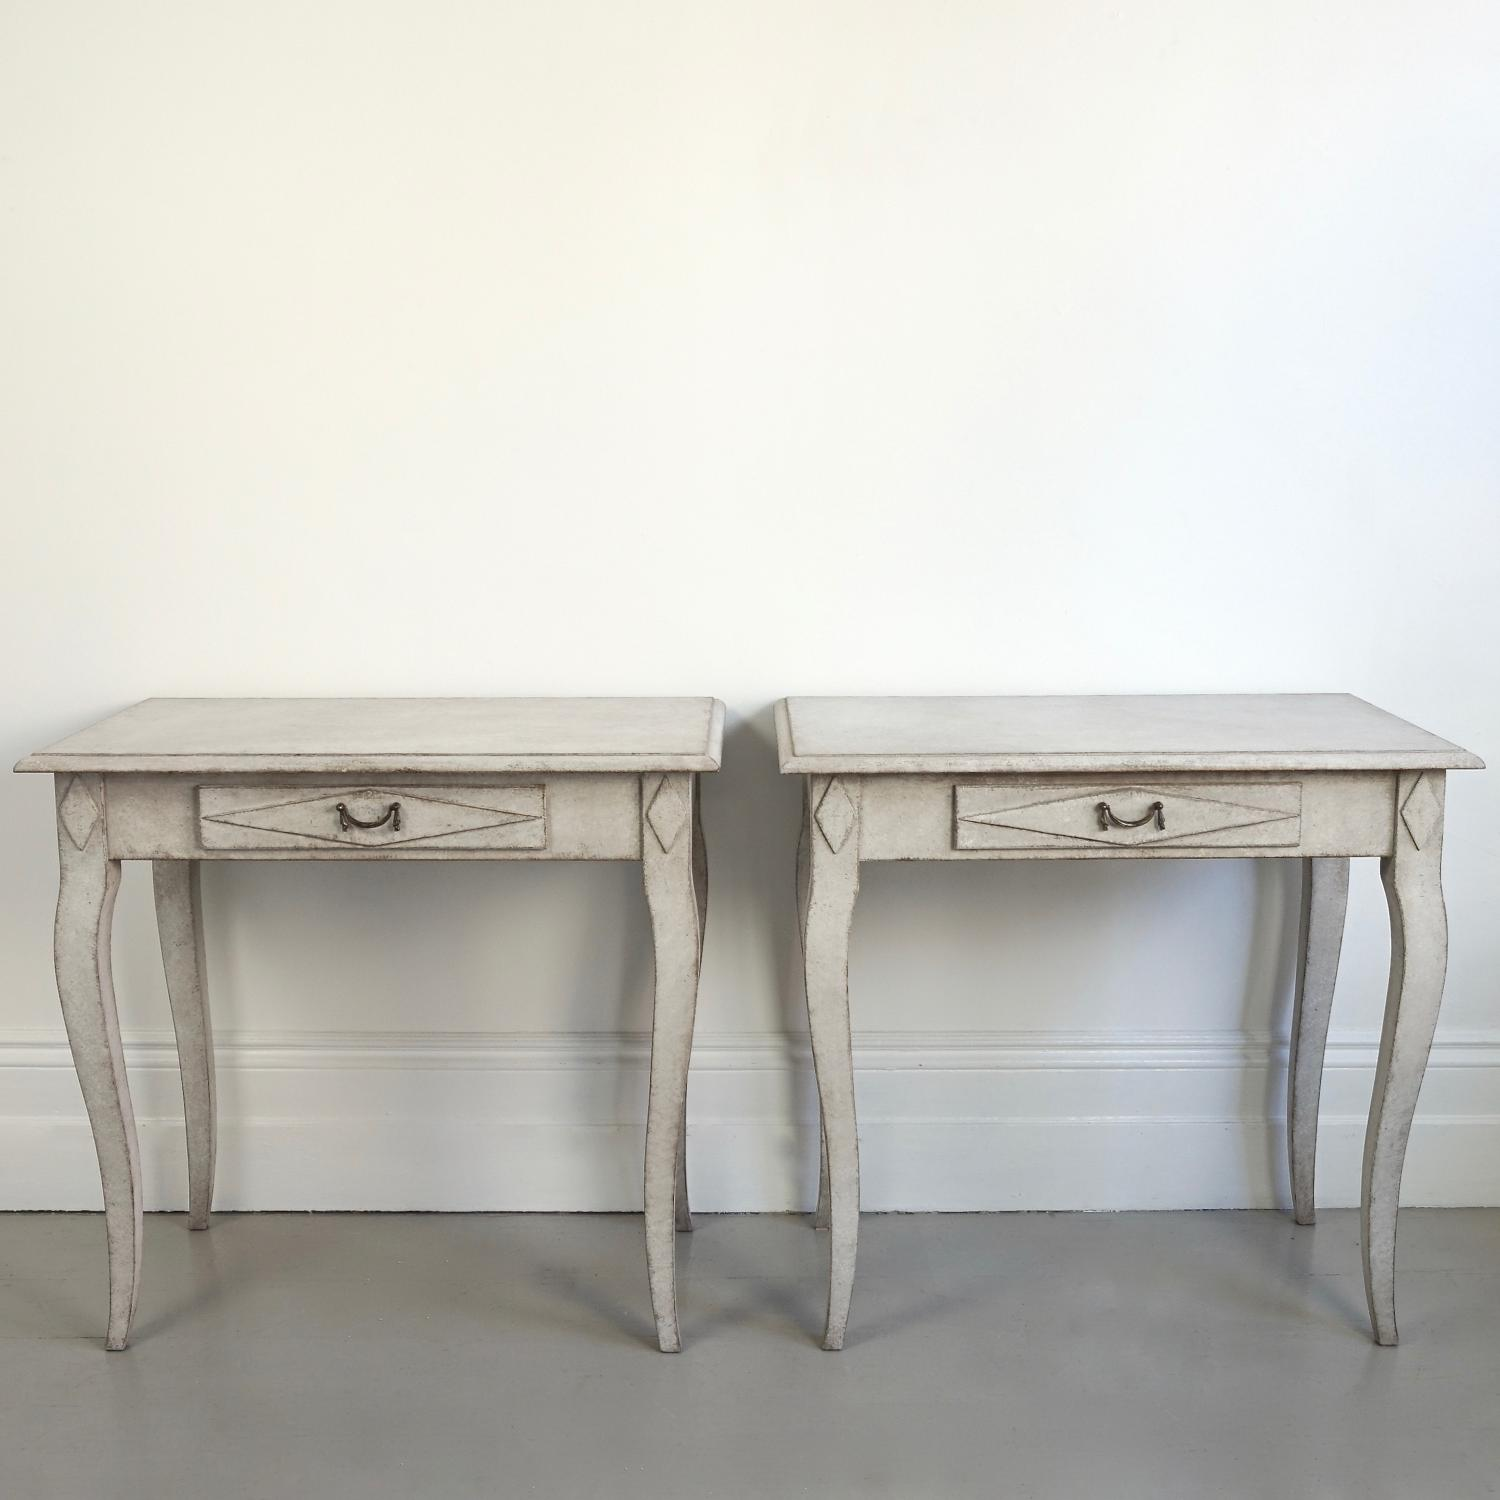 PAIR OF BESPOKE SWEDISH ROCOCO SIDE TABLES